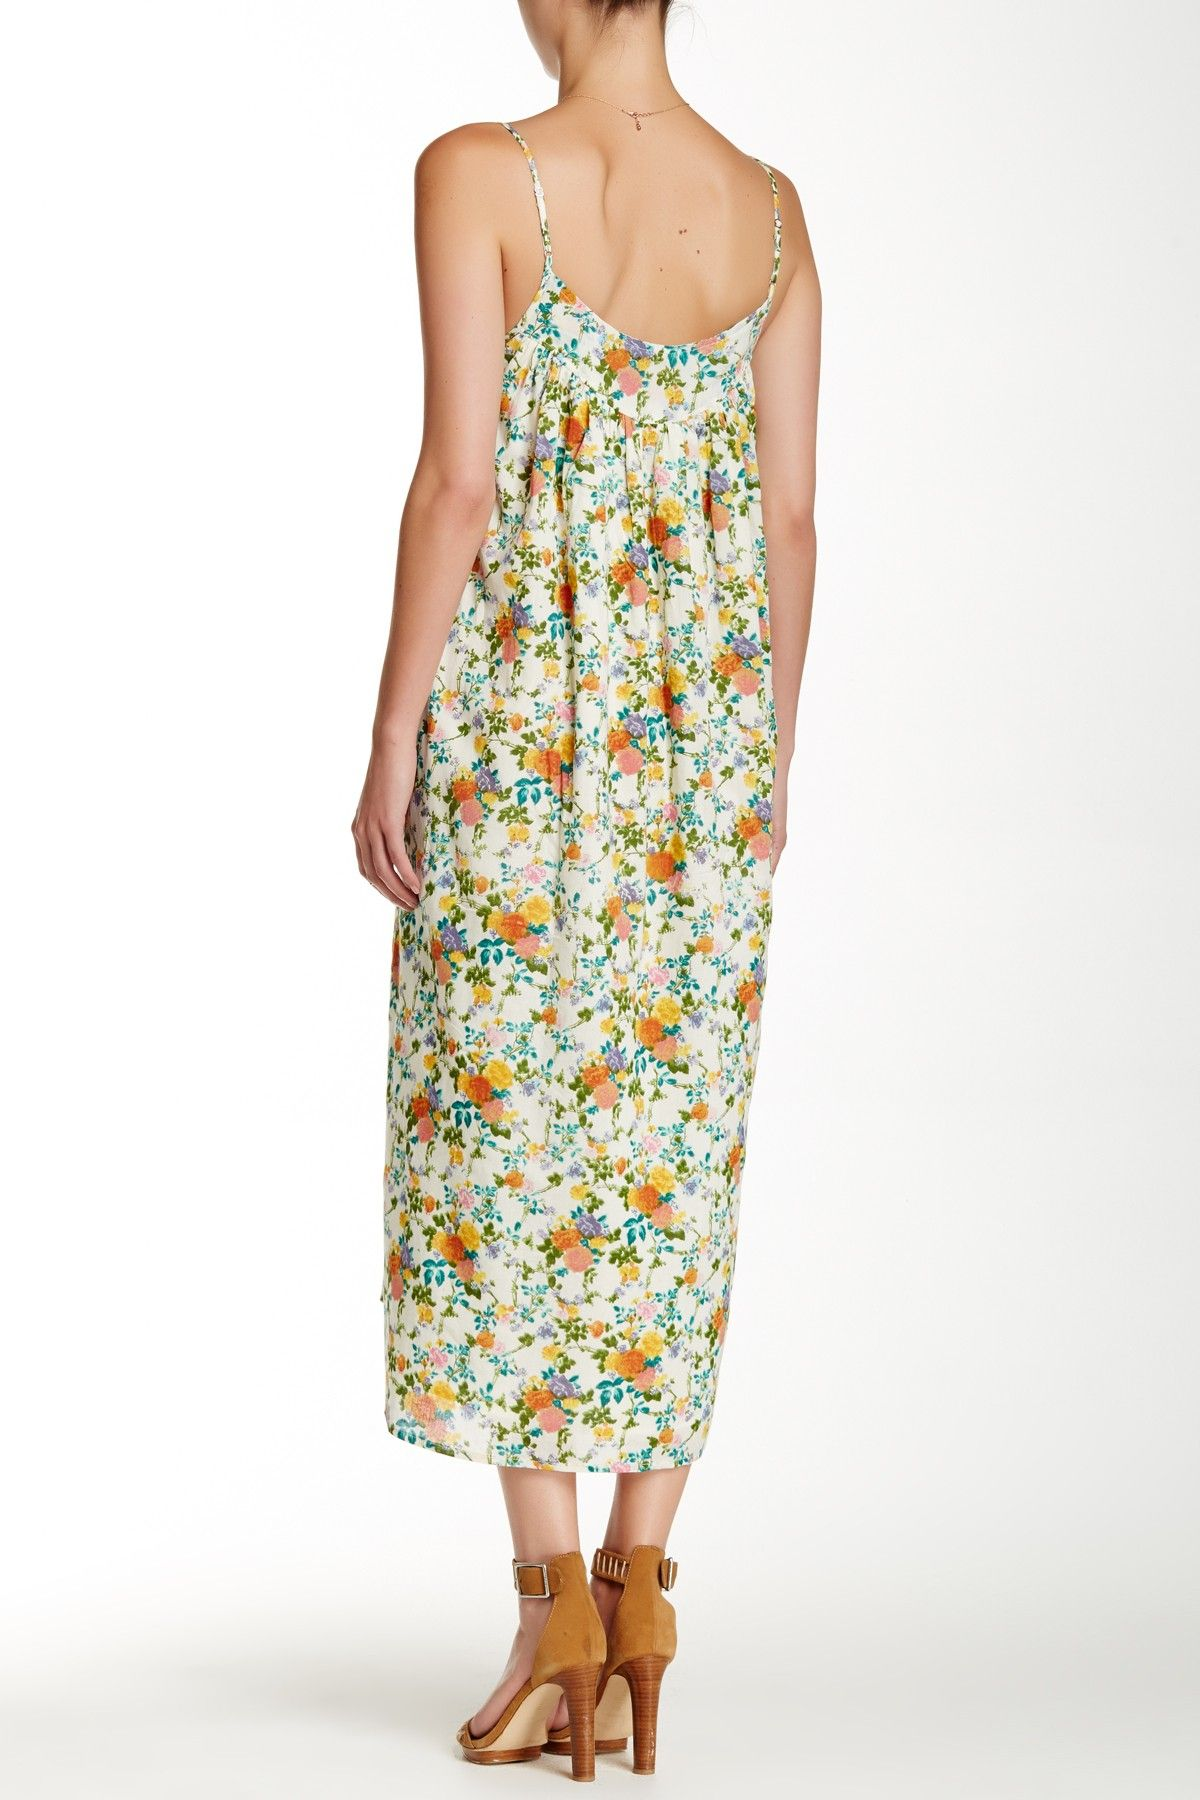 Floral maxi dress something about those maxis and other stuff